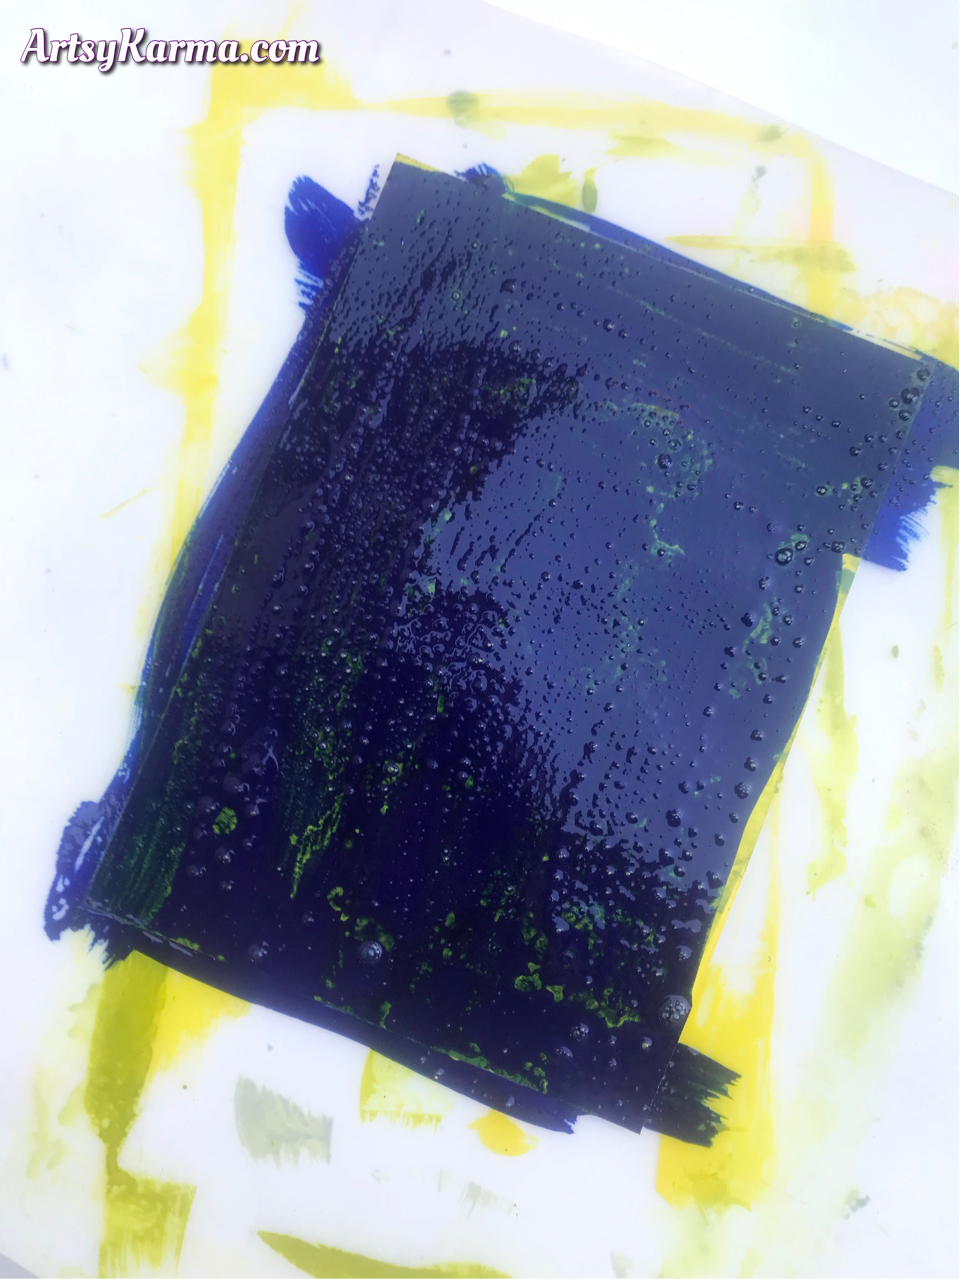 Layering acrylic paints and rubbing alcohol